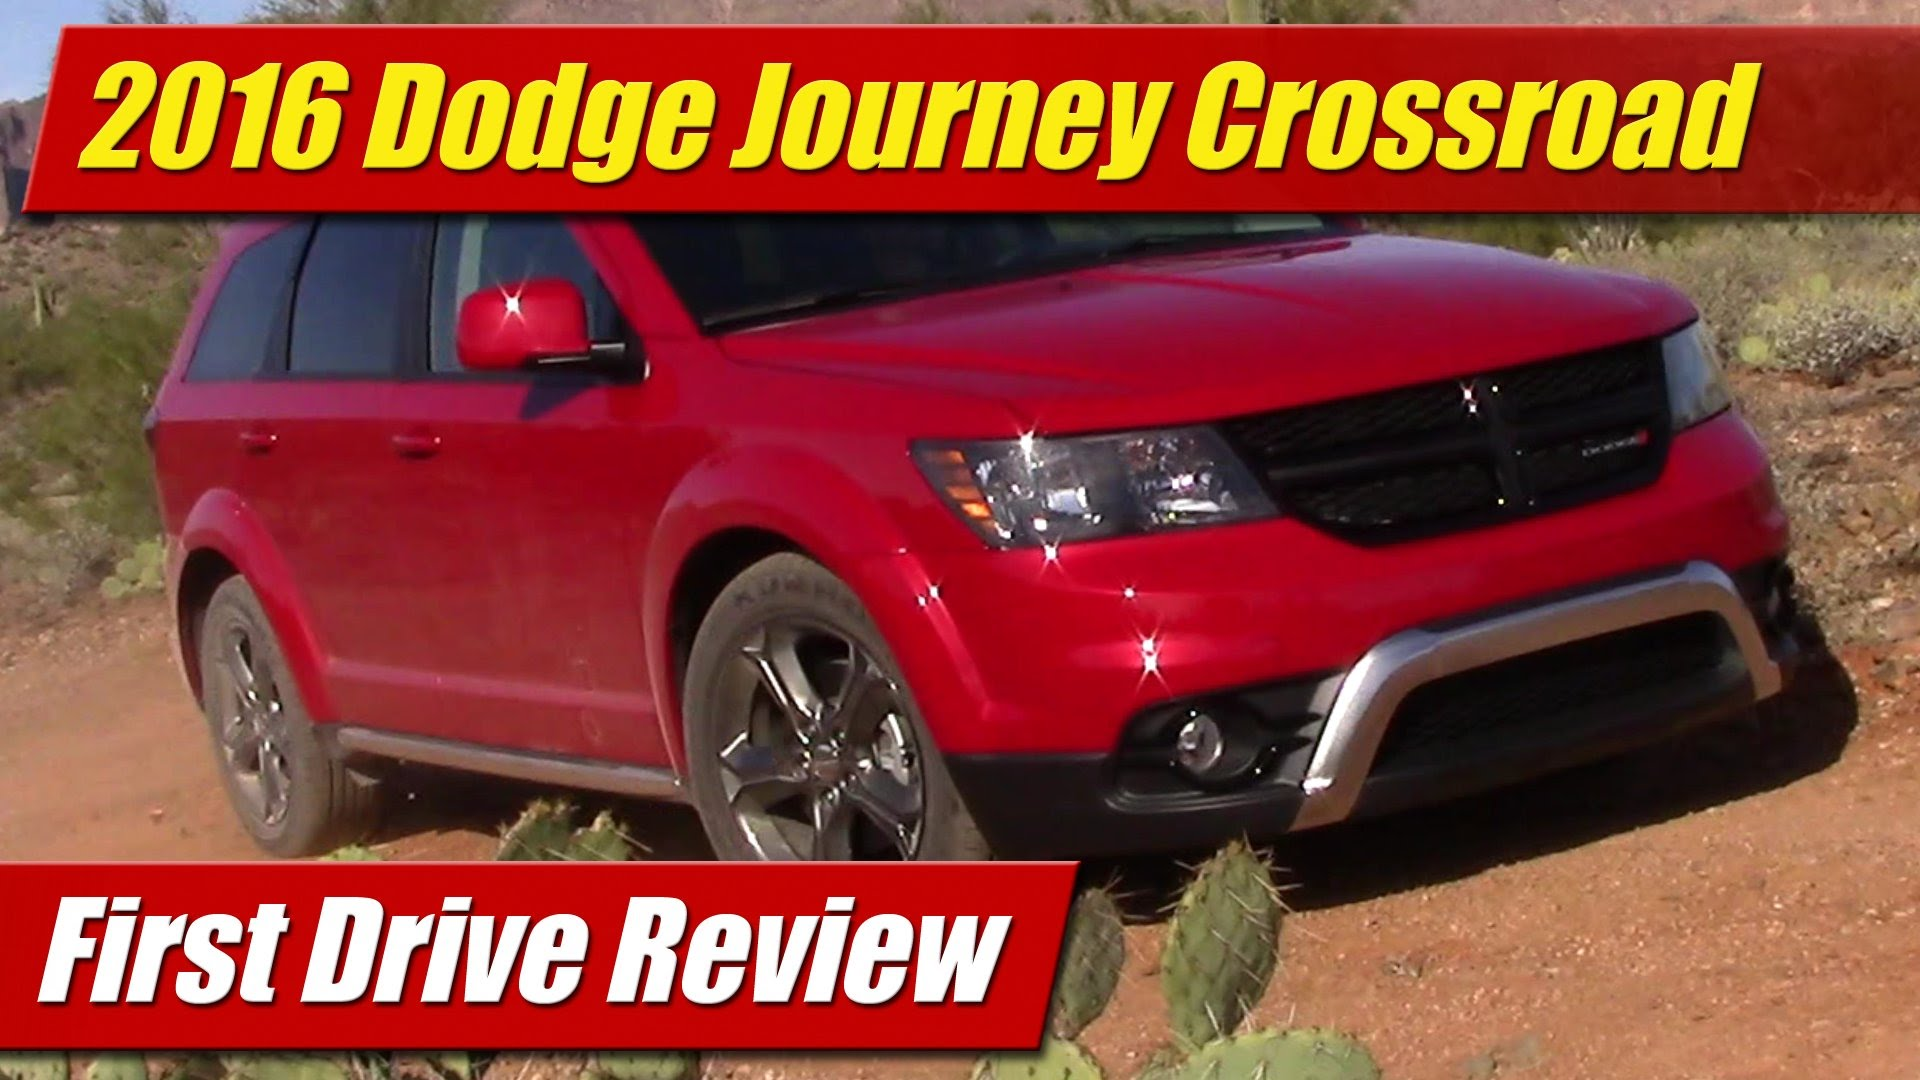 First Drive Review 2016 Dodge Journey Crossroad TestDriven TV